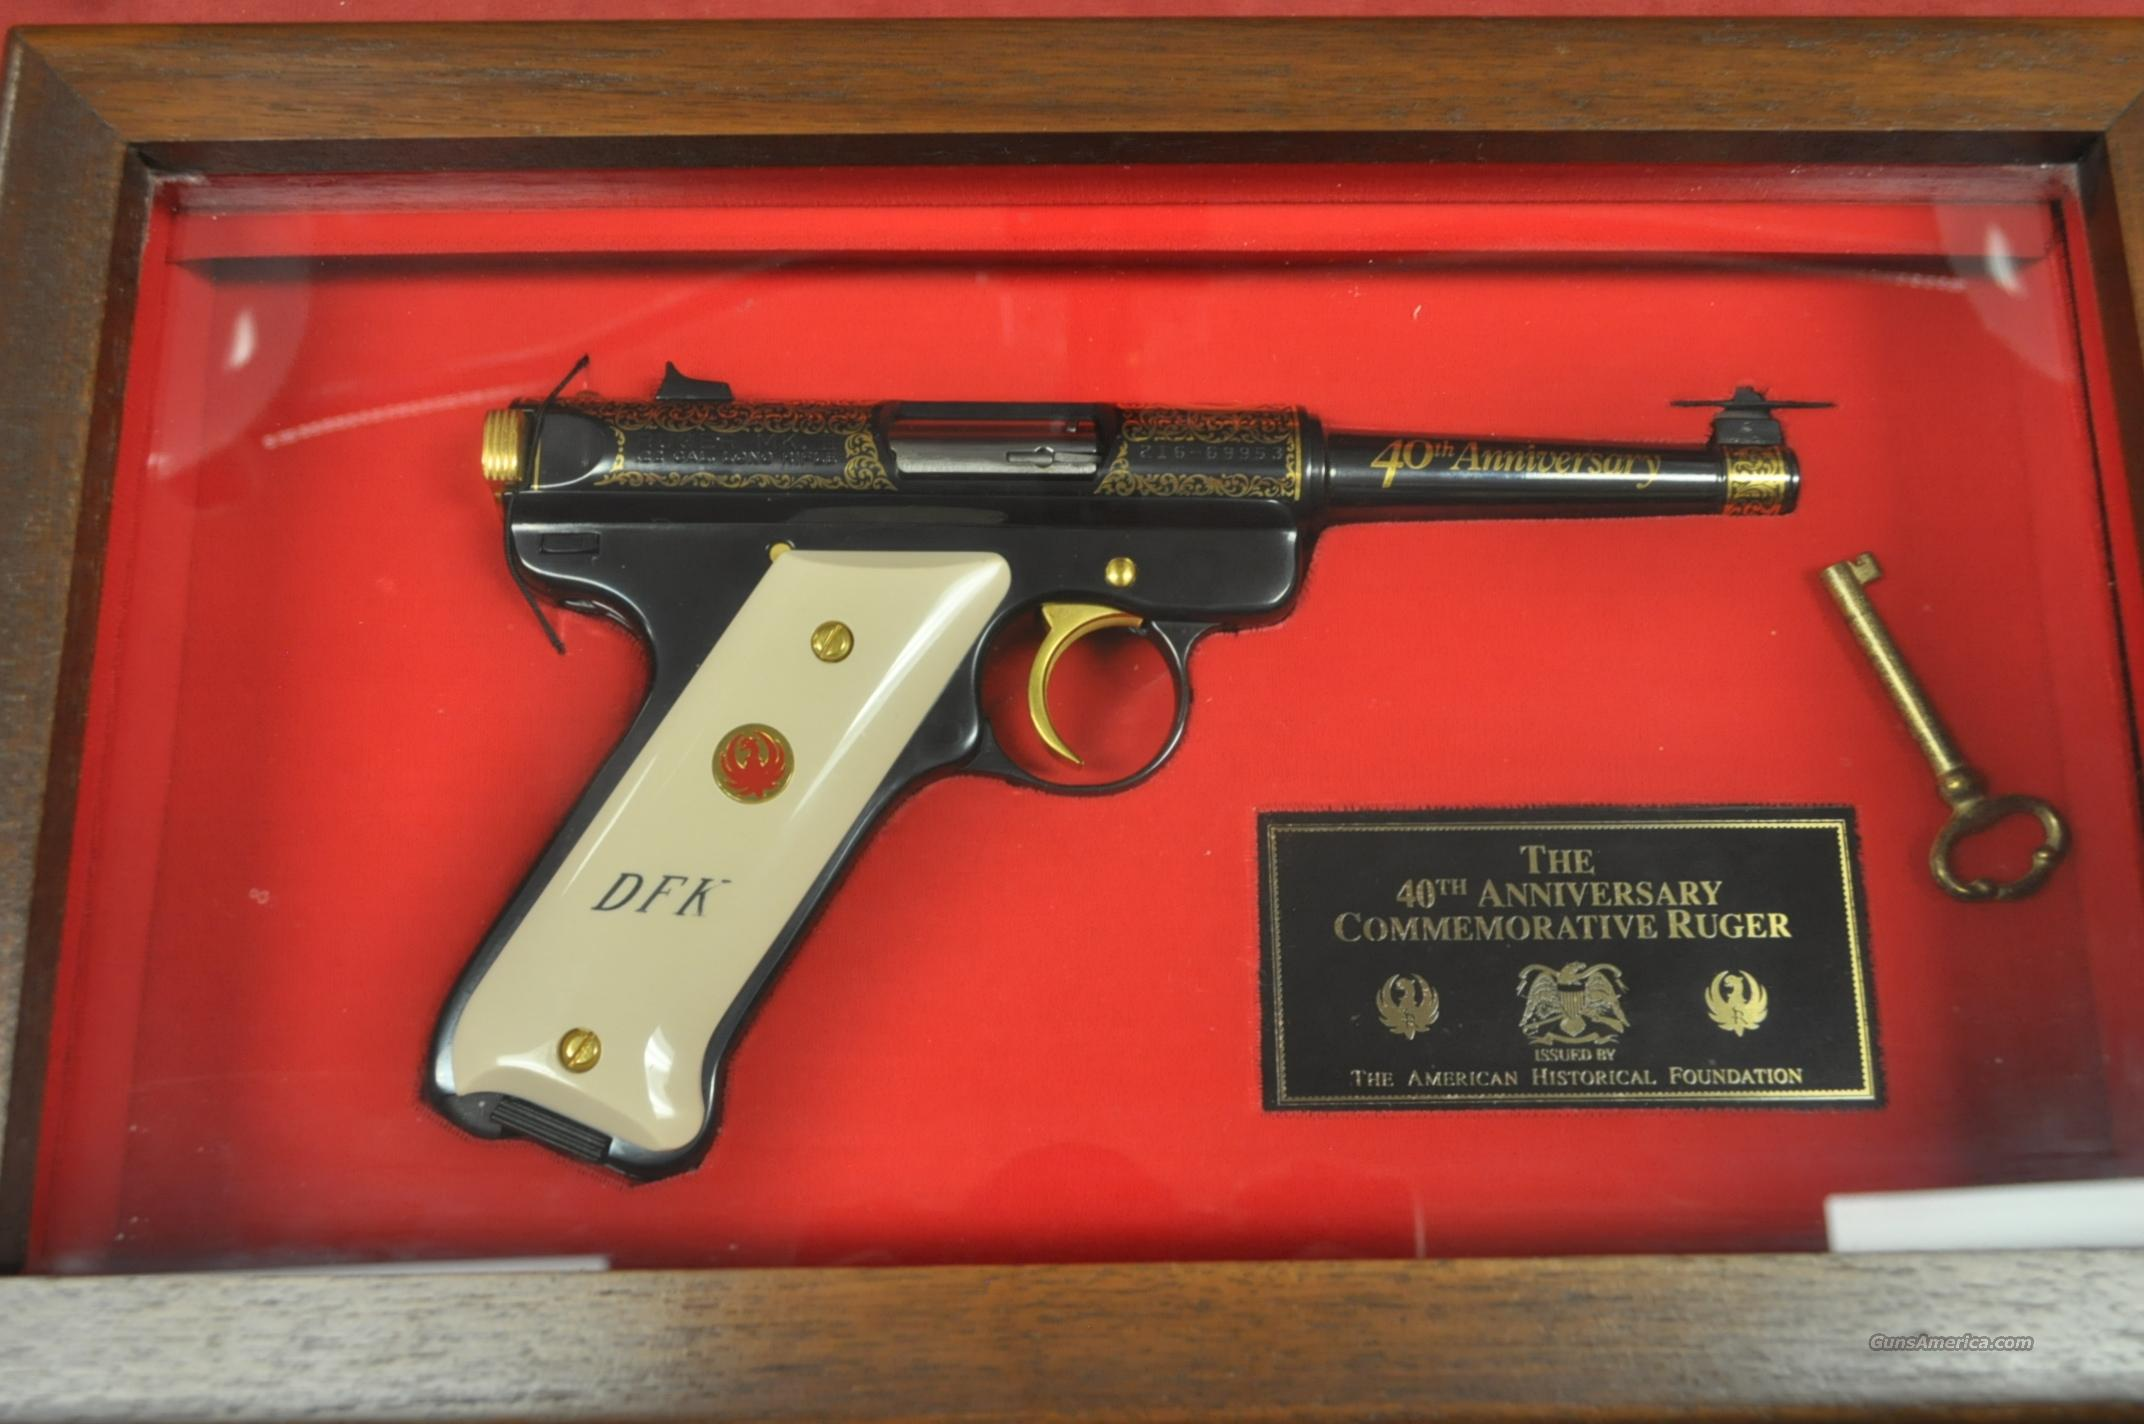 Ruger Mk II 40th Anniversary *MUST CALL*  Guns > Pistols > Ruger Semi-Auto Pistols > Mark I & II Family